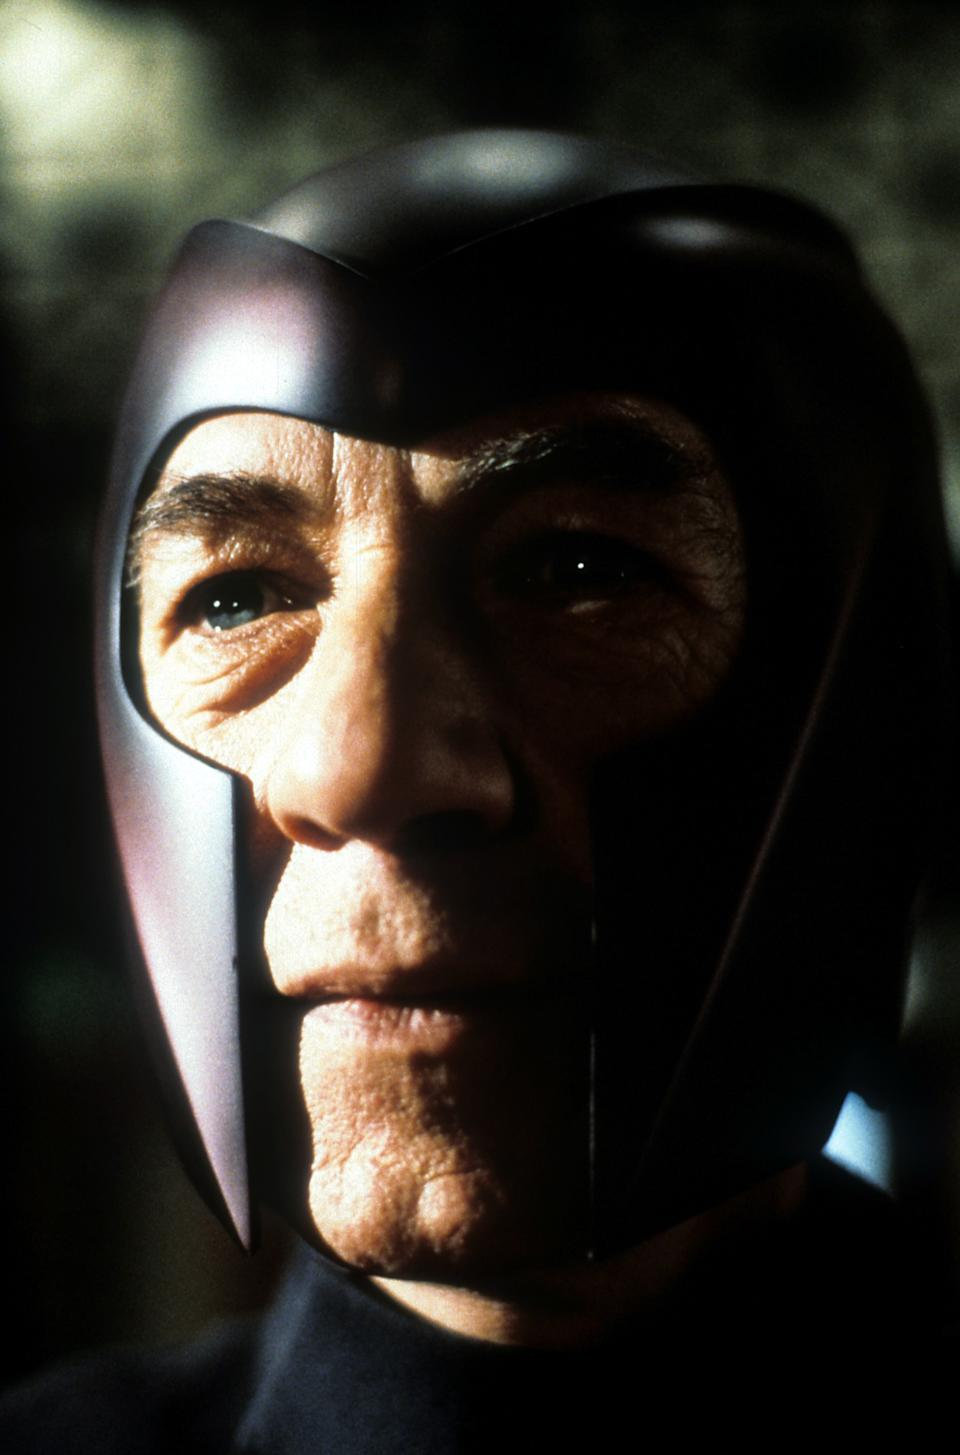 Ian McKellen in a scene from the film 'X-Men', 2000. (Photo by 20th Century-Fox/Getty Images)